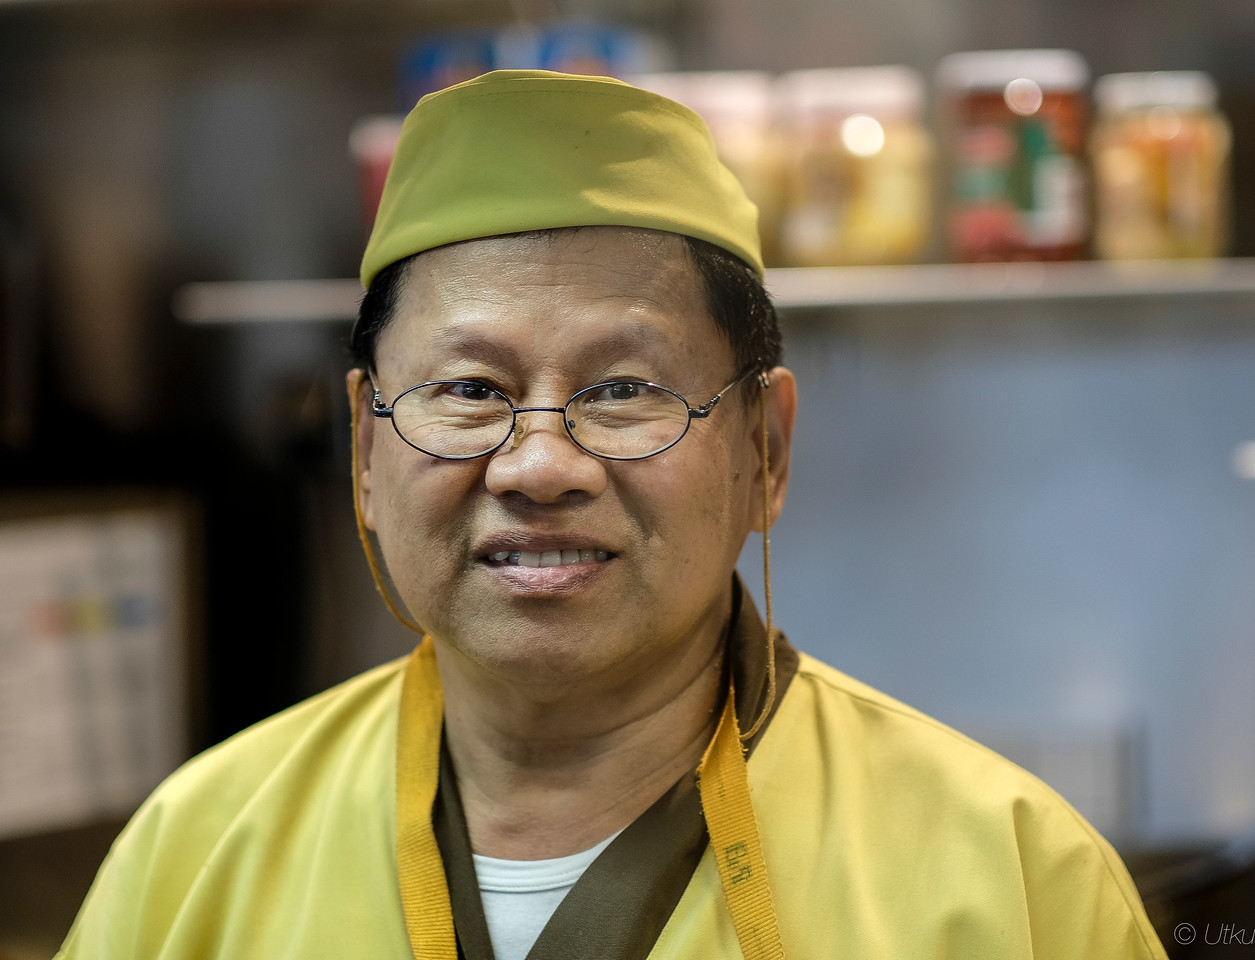 The Chef of Far Eastern Restaurant at Munich Airport